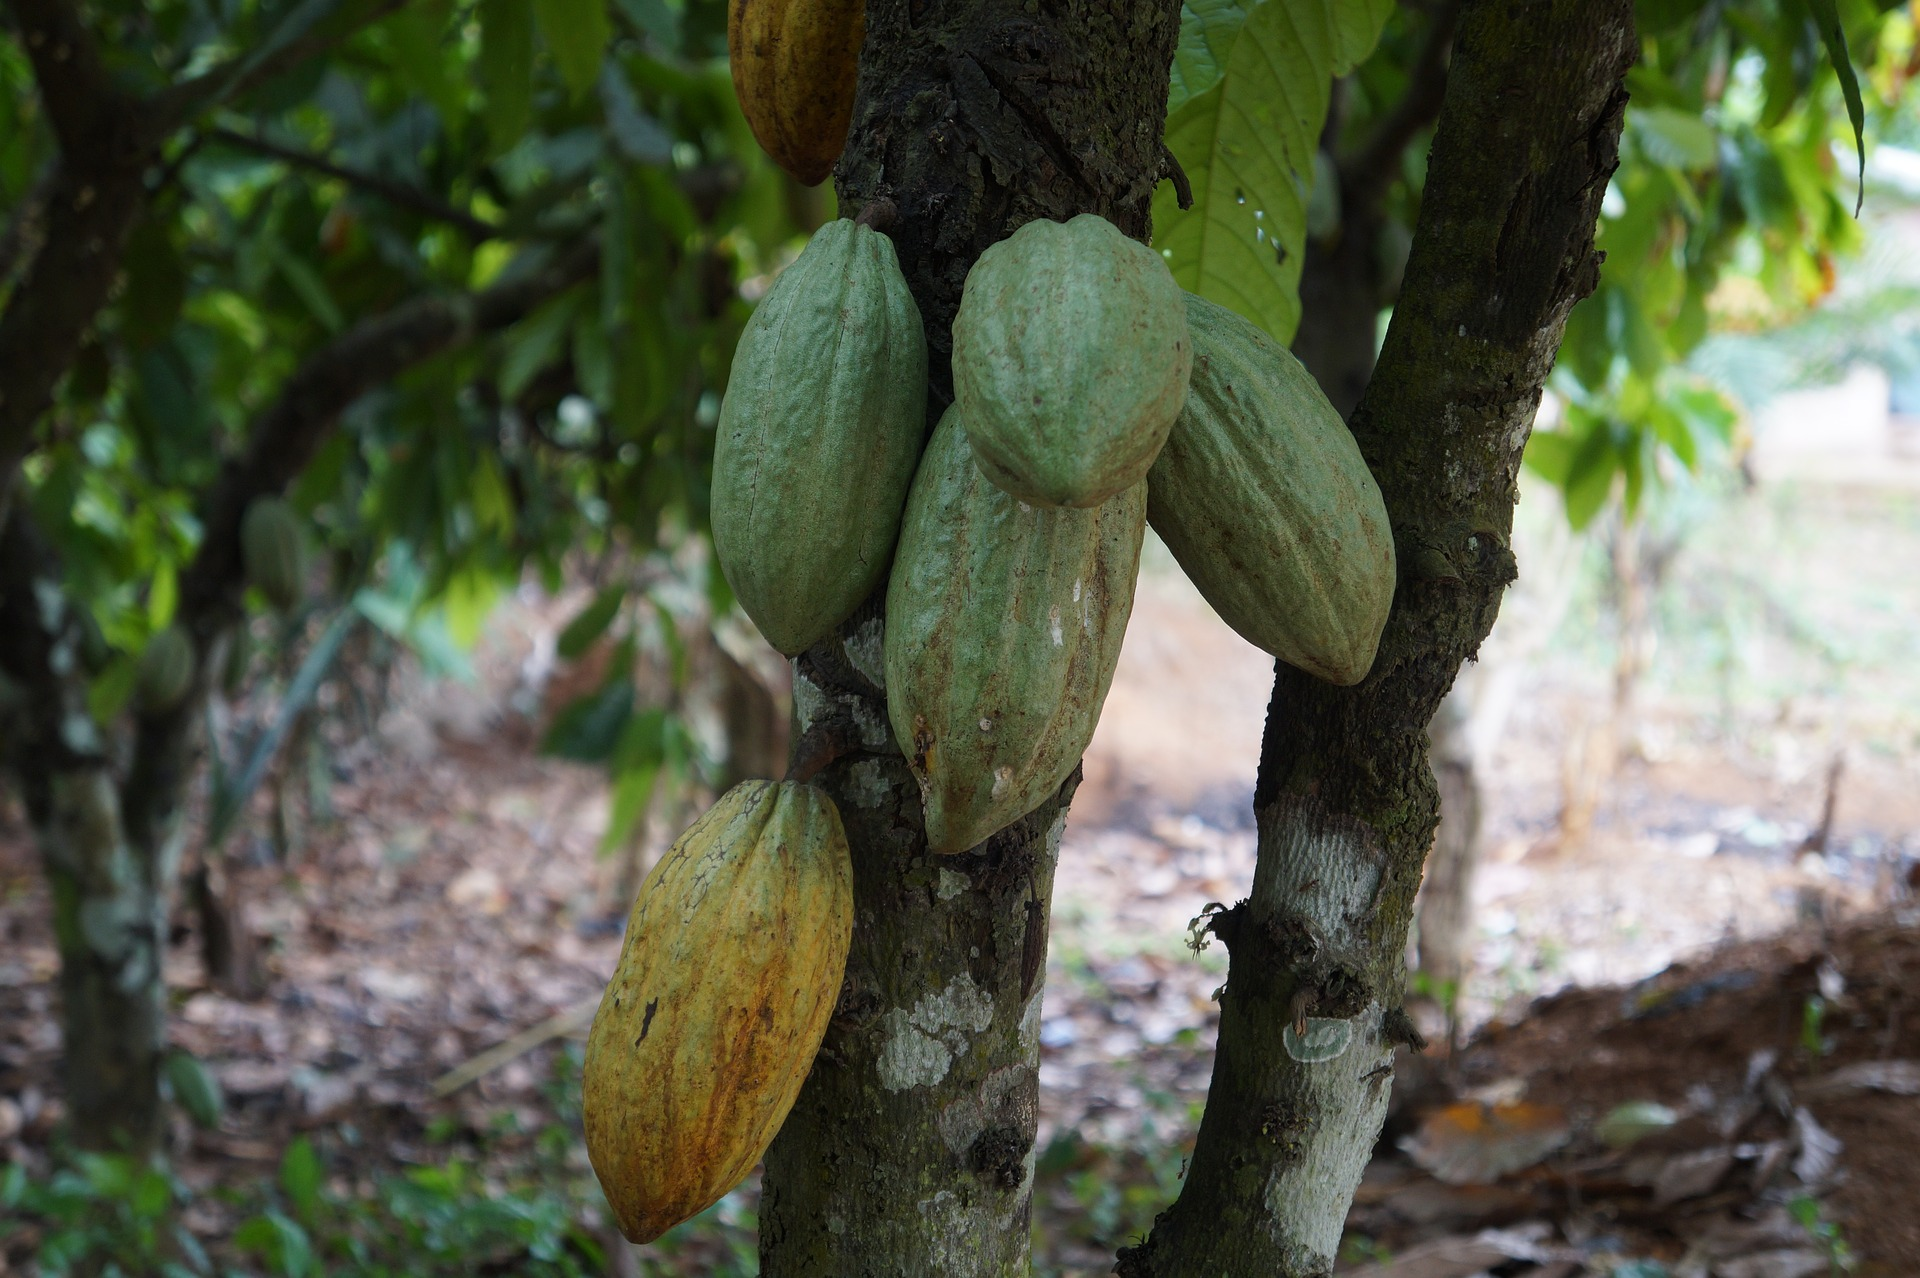 Cacao pods on tree.jpg